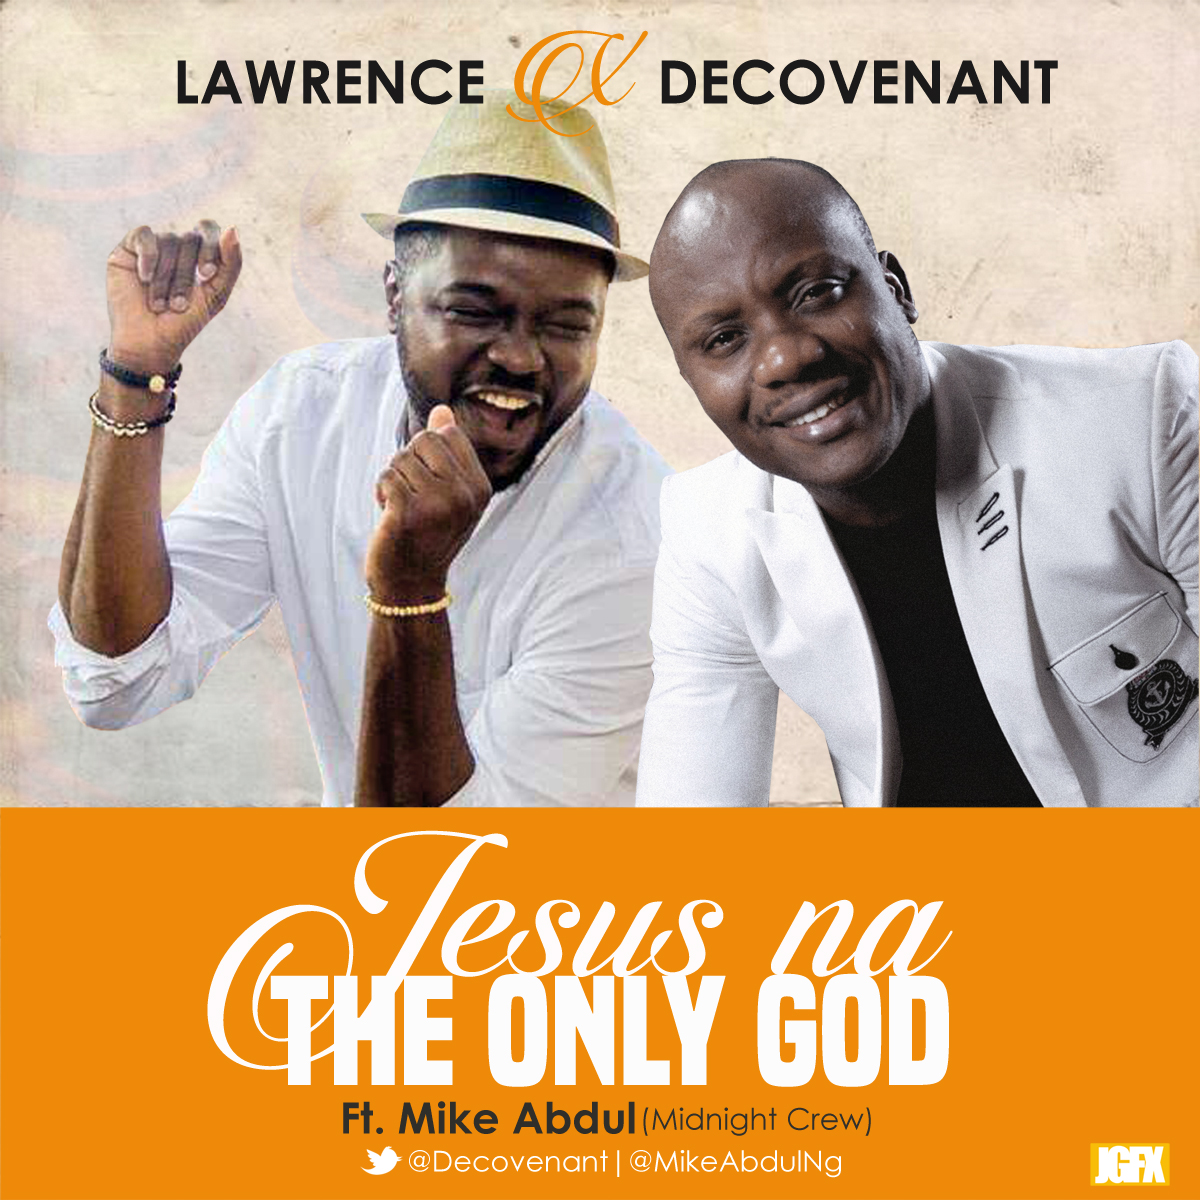 Lawrence Decovenant - The Onl _God